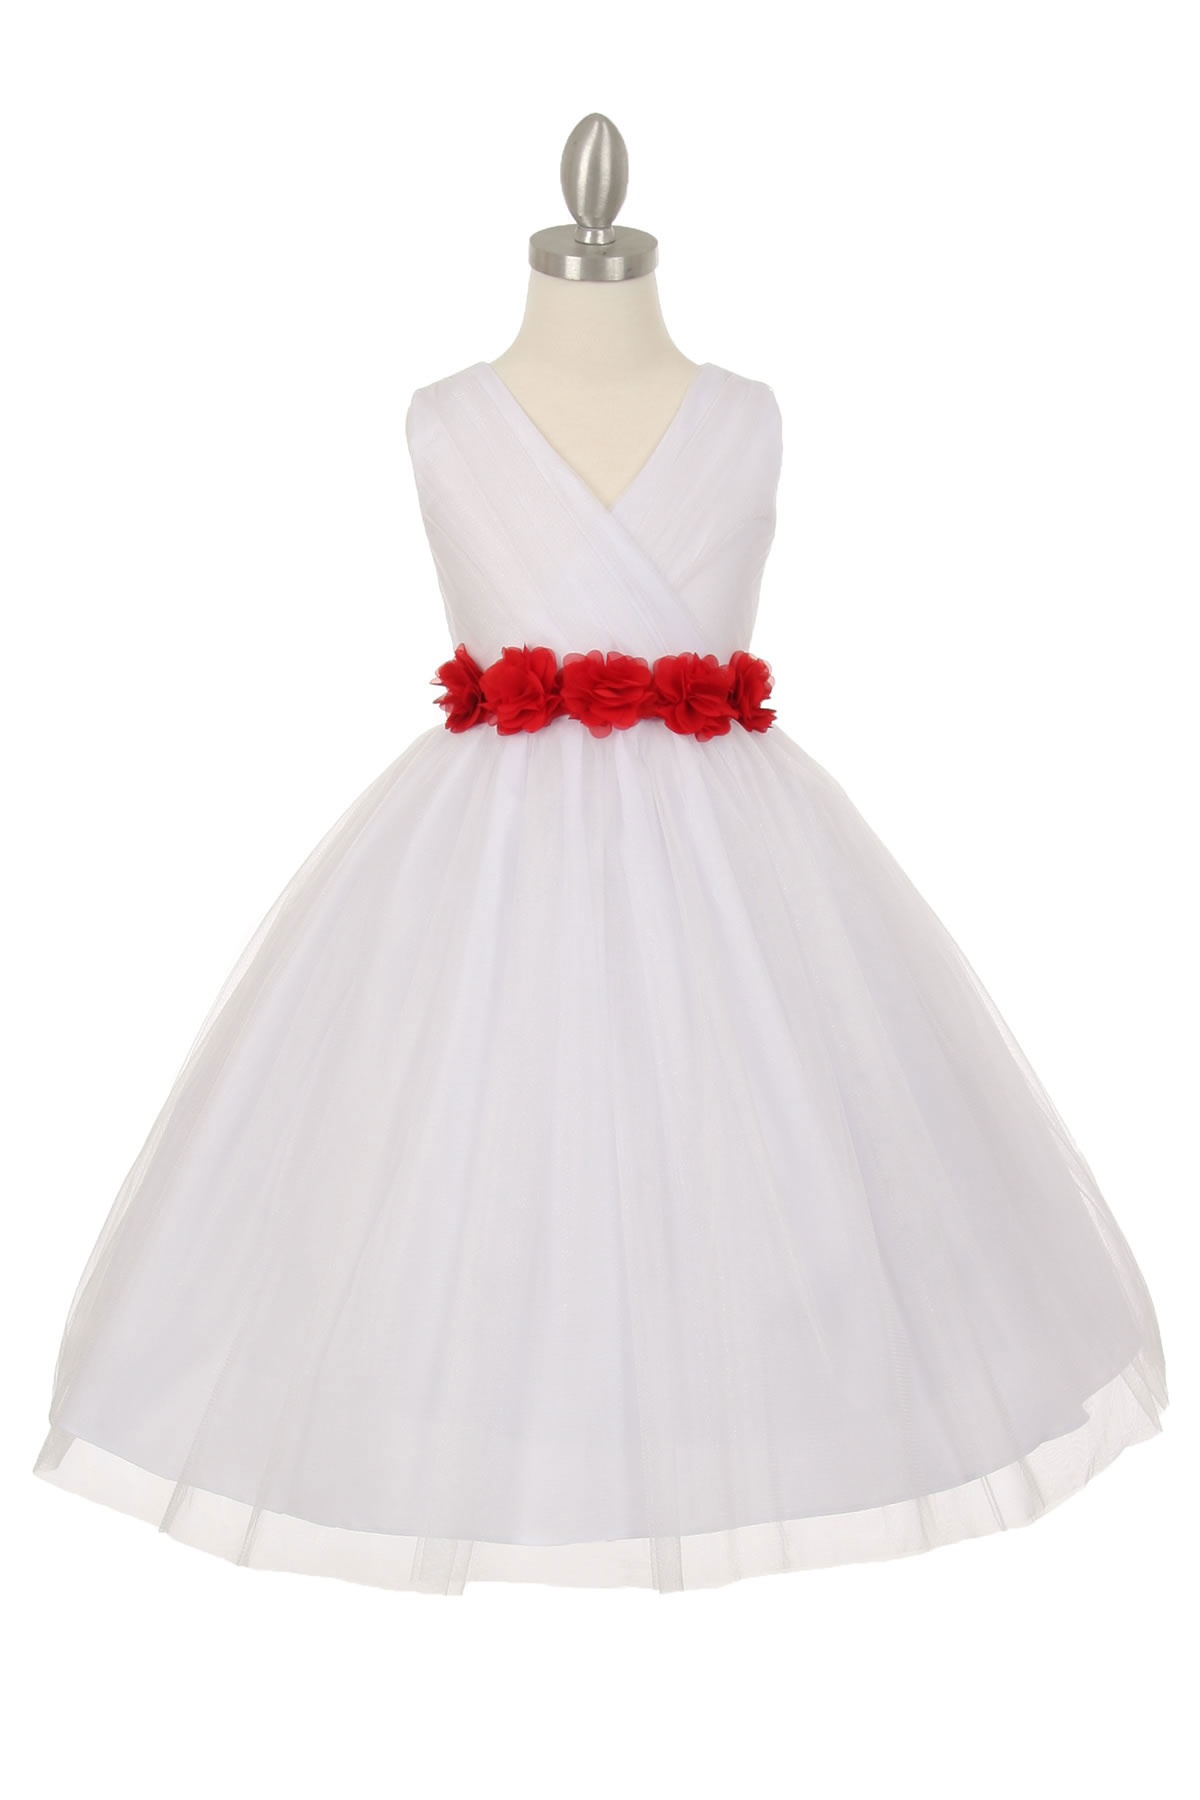 CC 1220WHRD Girls Dress Style 1220 WHITE Dress with 14